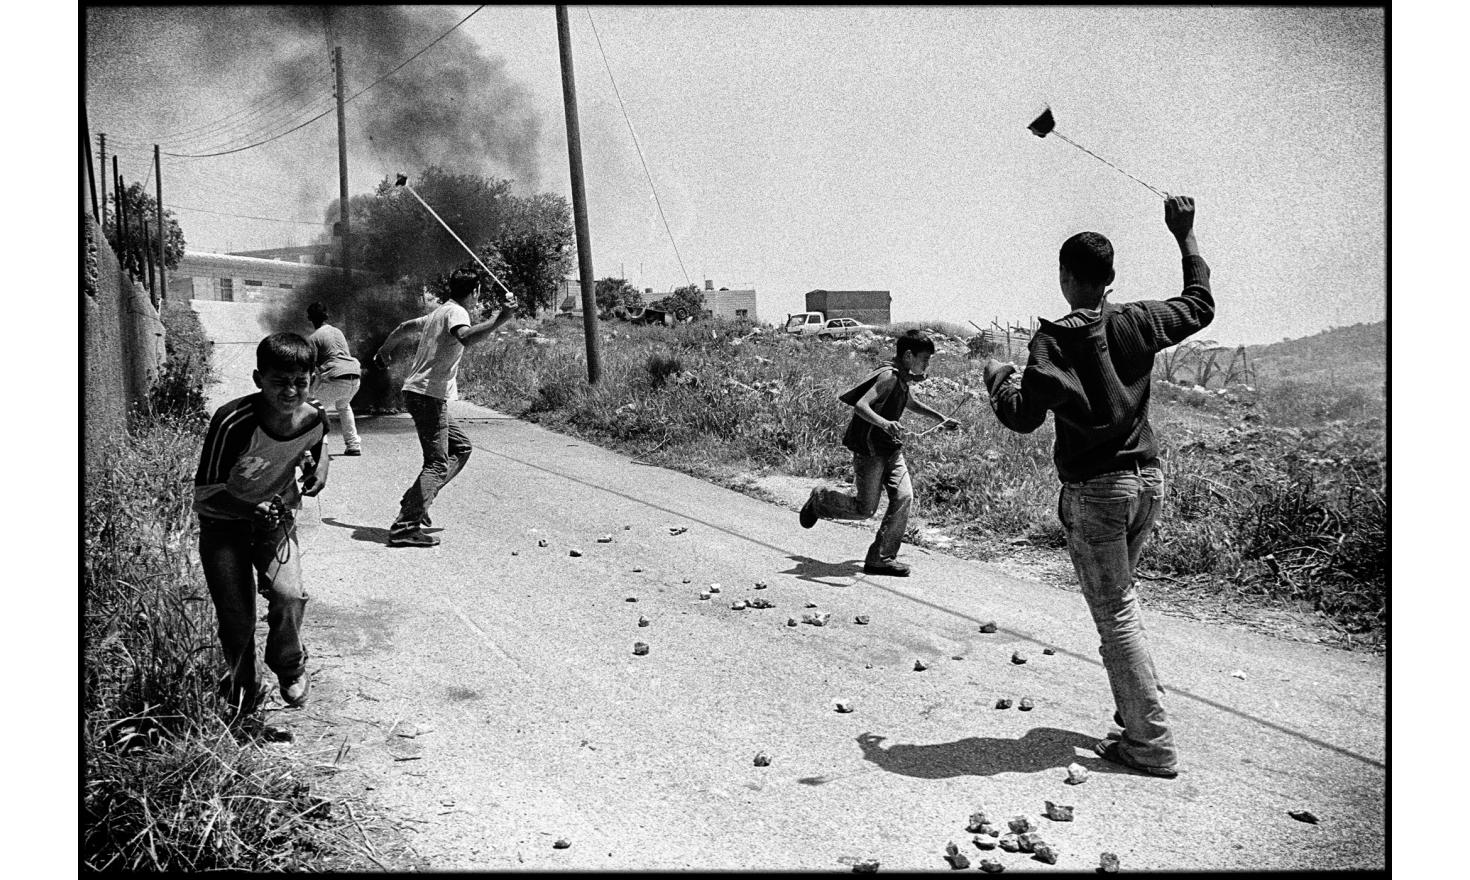 Clashes against the construction of the security fence, between palestinian youths and the israeli army. Biddu, occupied West bank. April 2004.